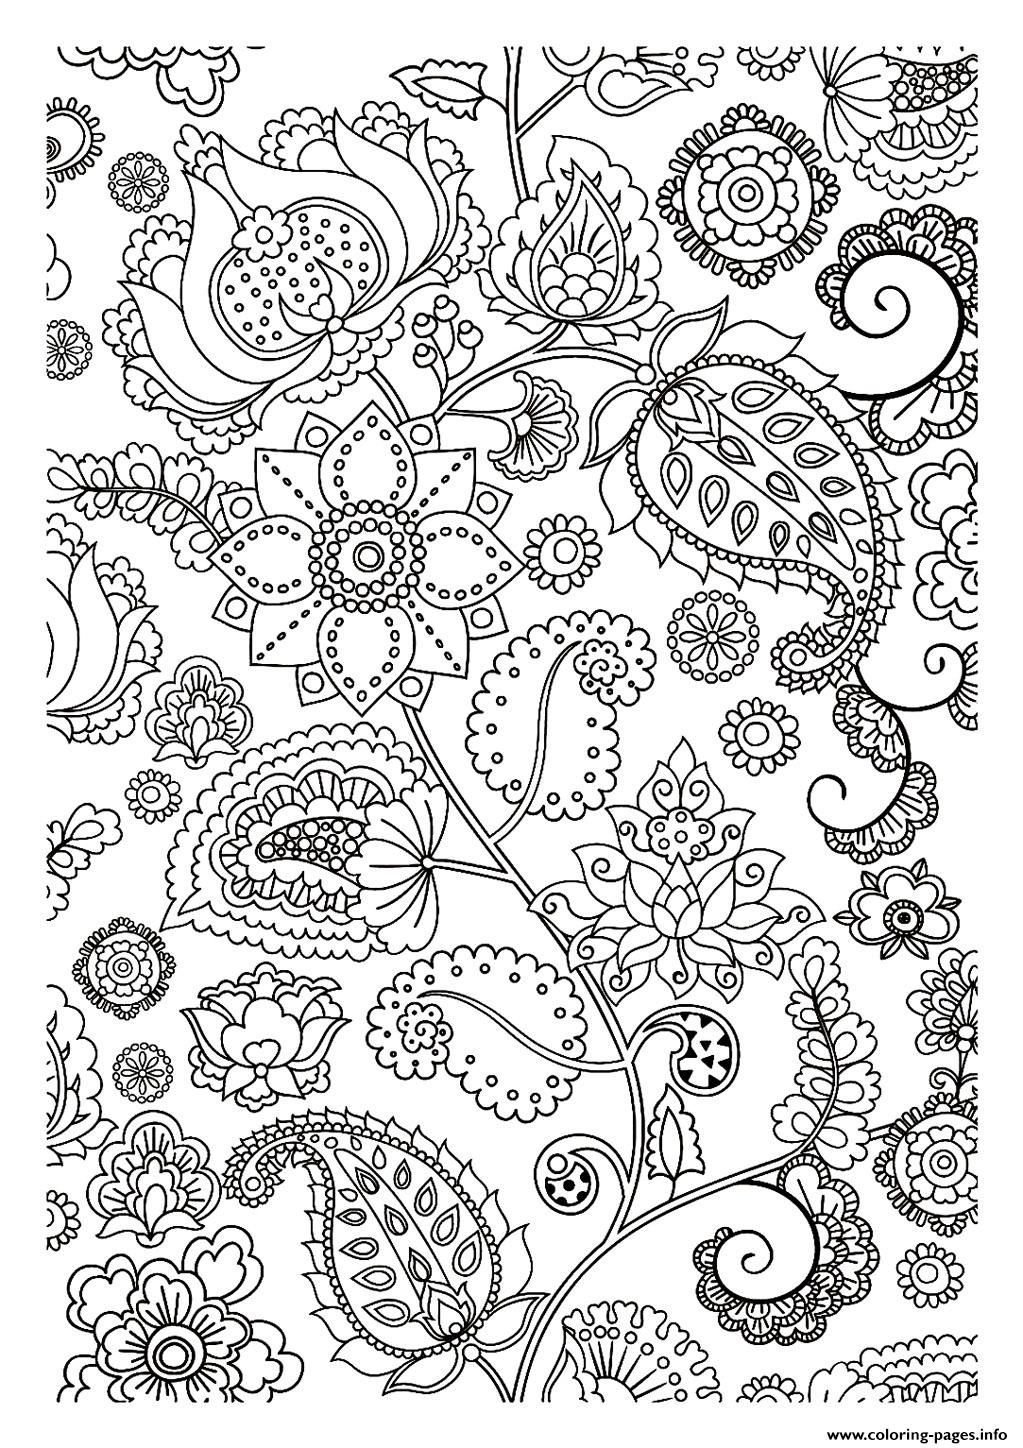 Zen coloring pages to print - Adult Flowers Zen Coloring Pages Printable And Coloring Book To Print For Free Find More Coloring Pages Online For Kids And Adults Of Adult Flowers Zen